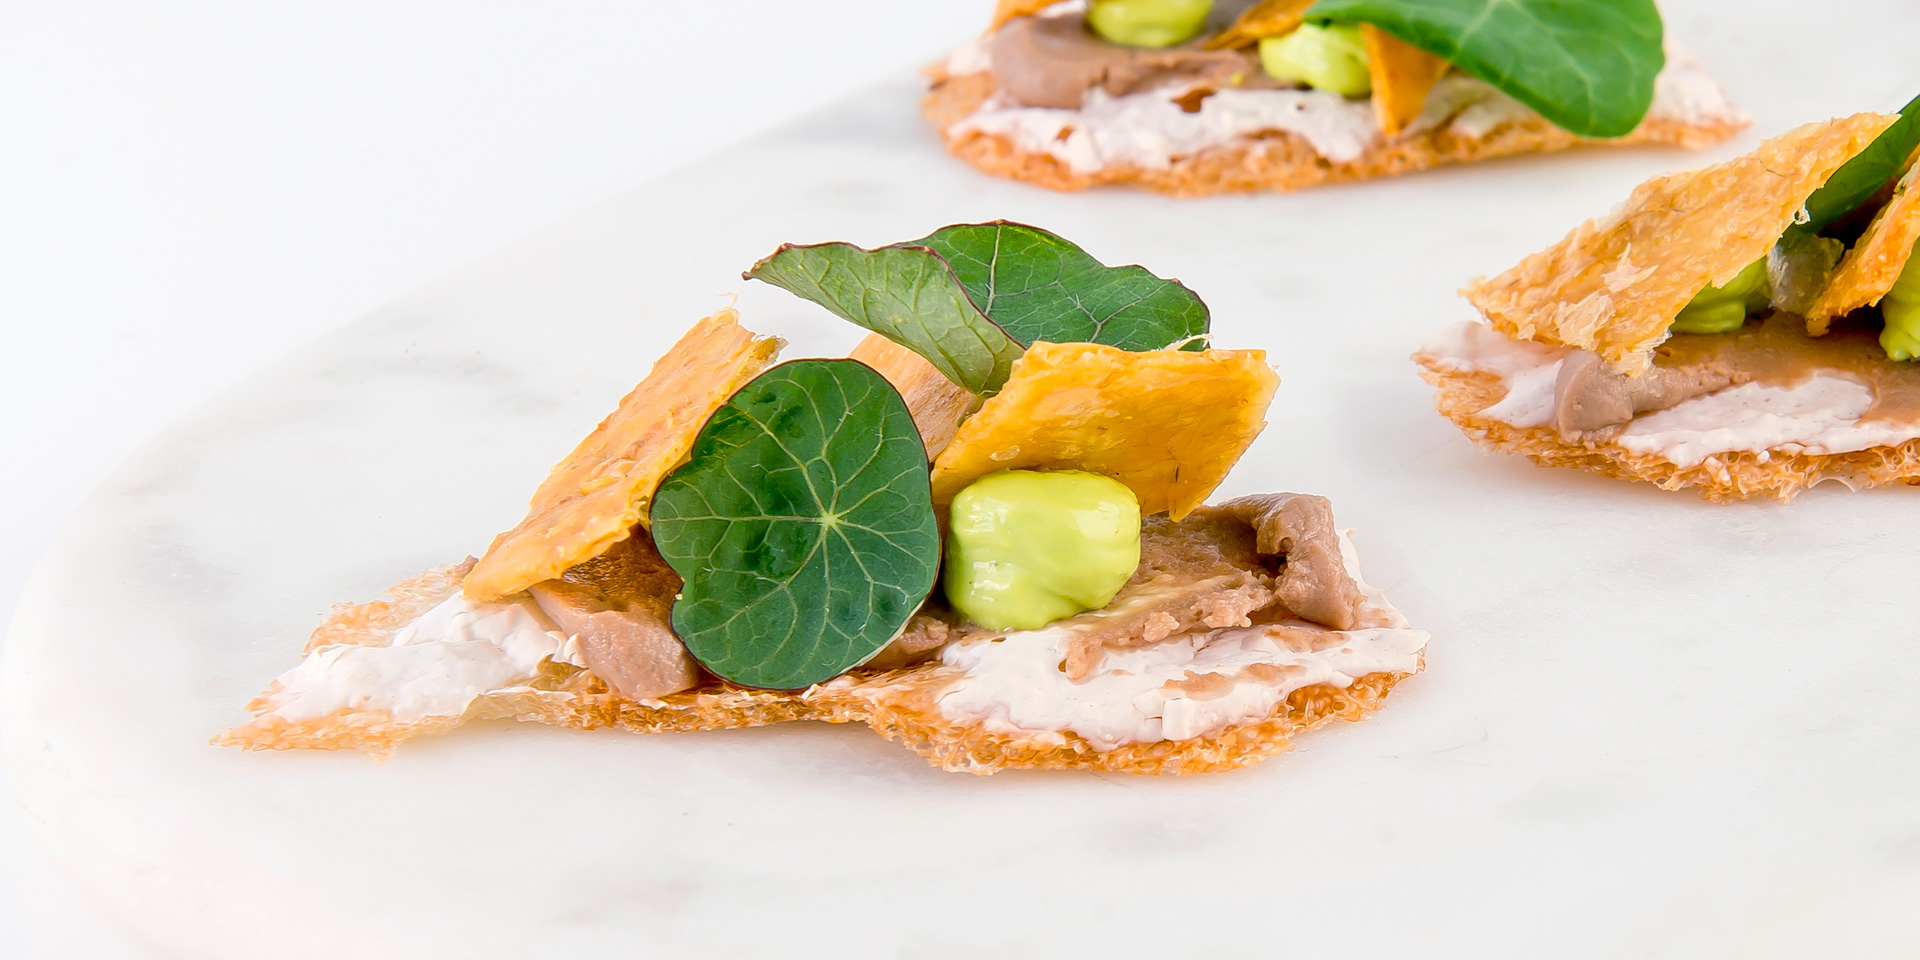 Catering from approved suppliers